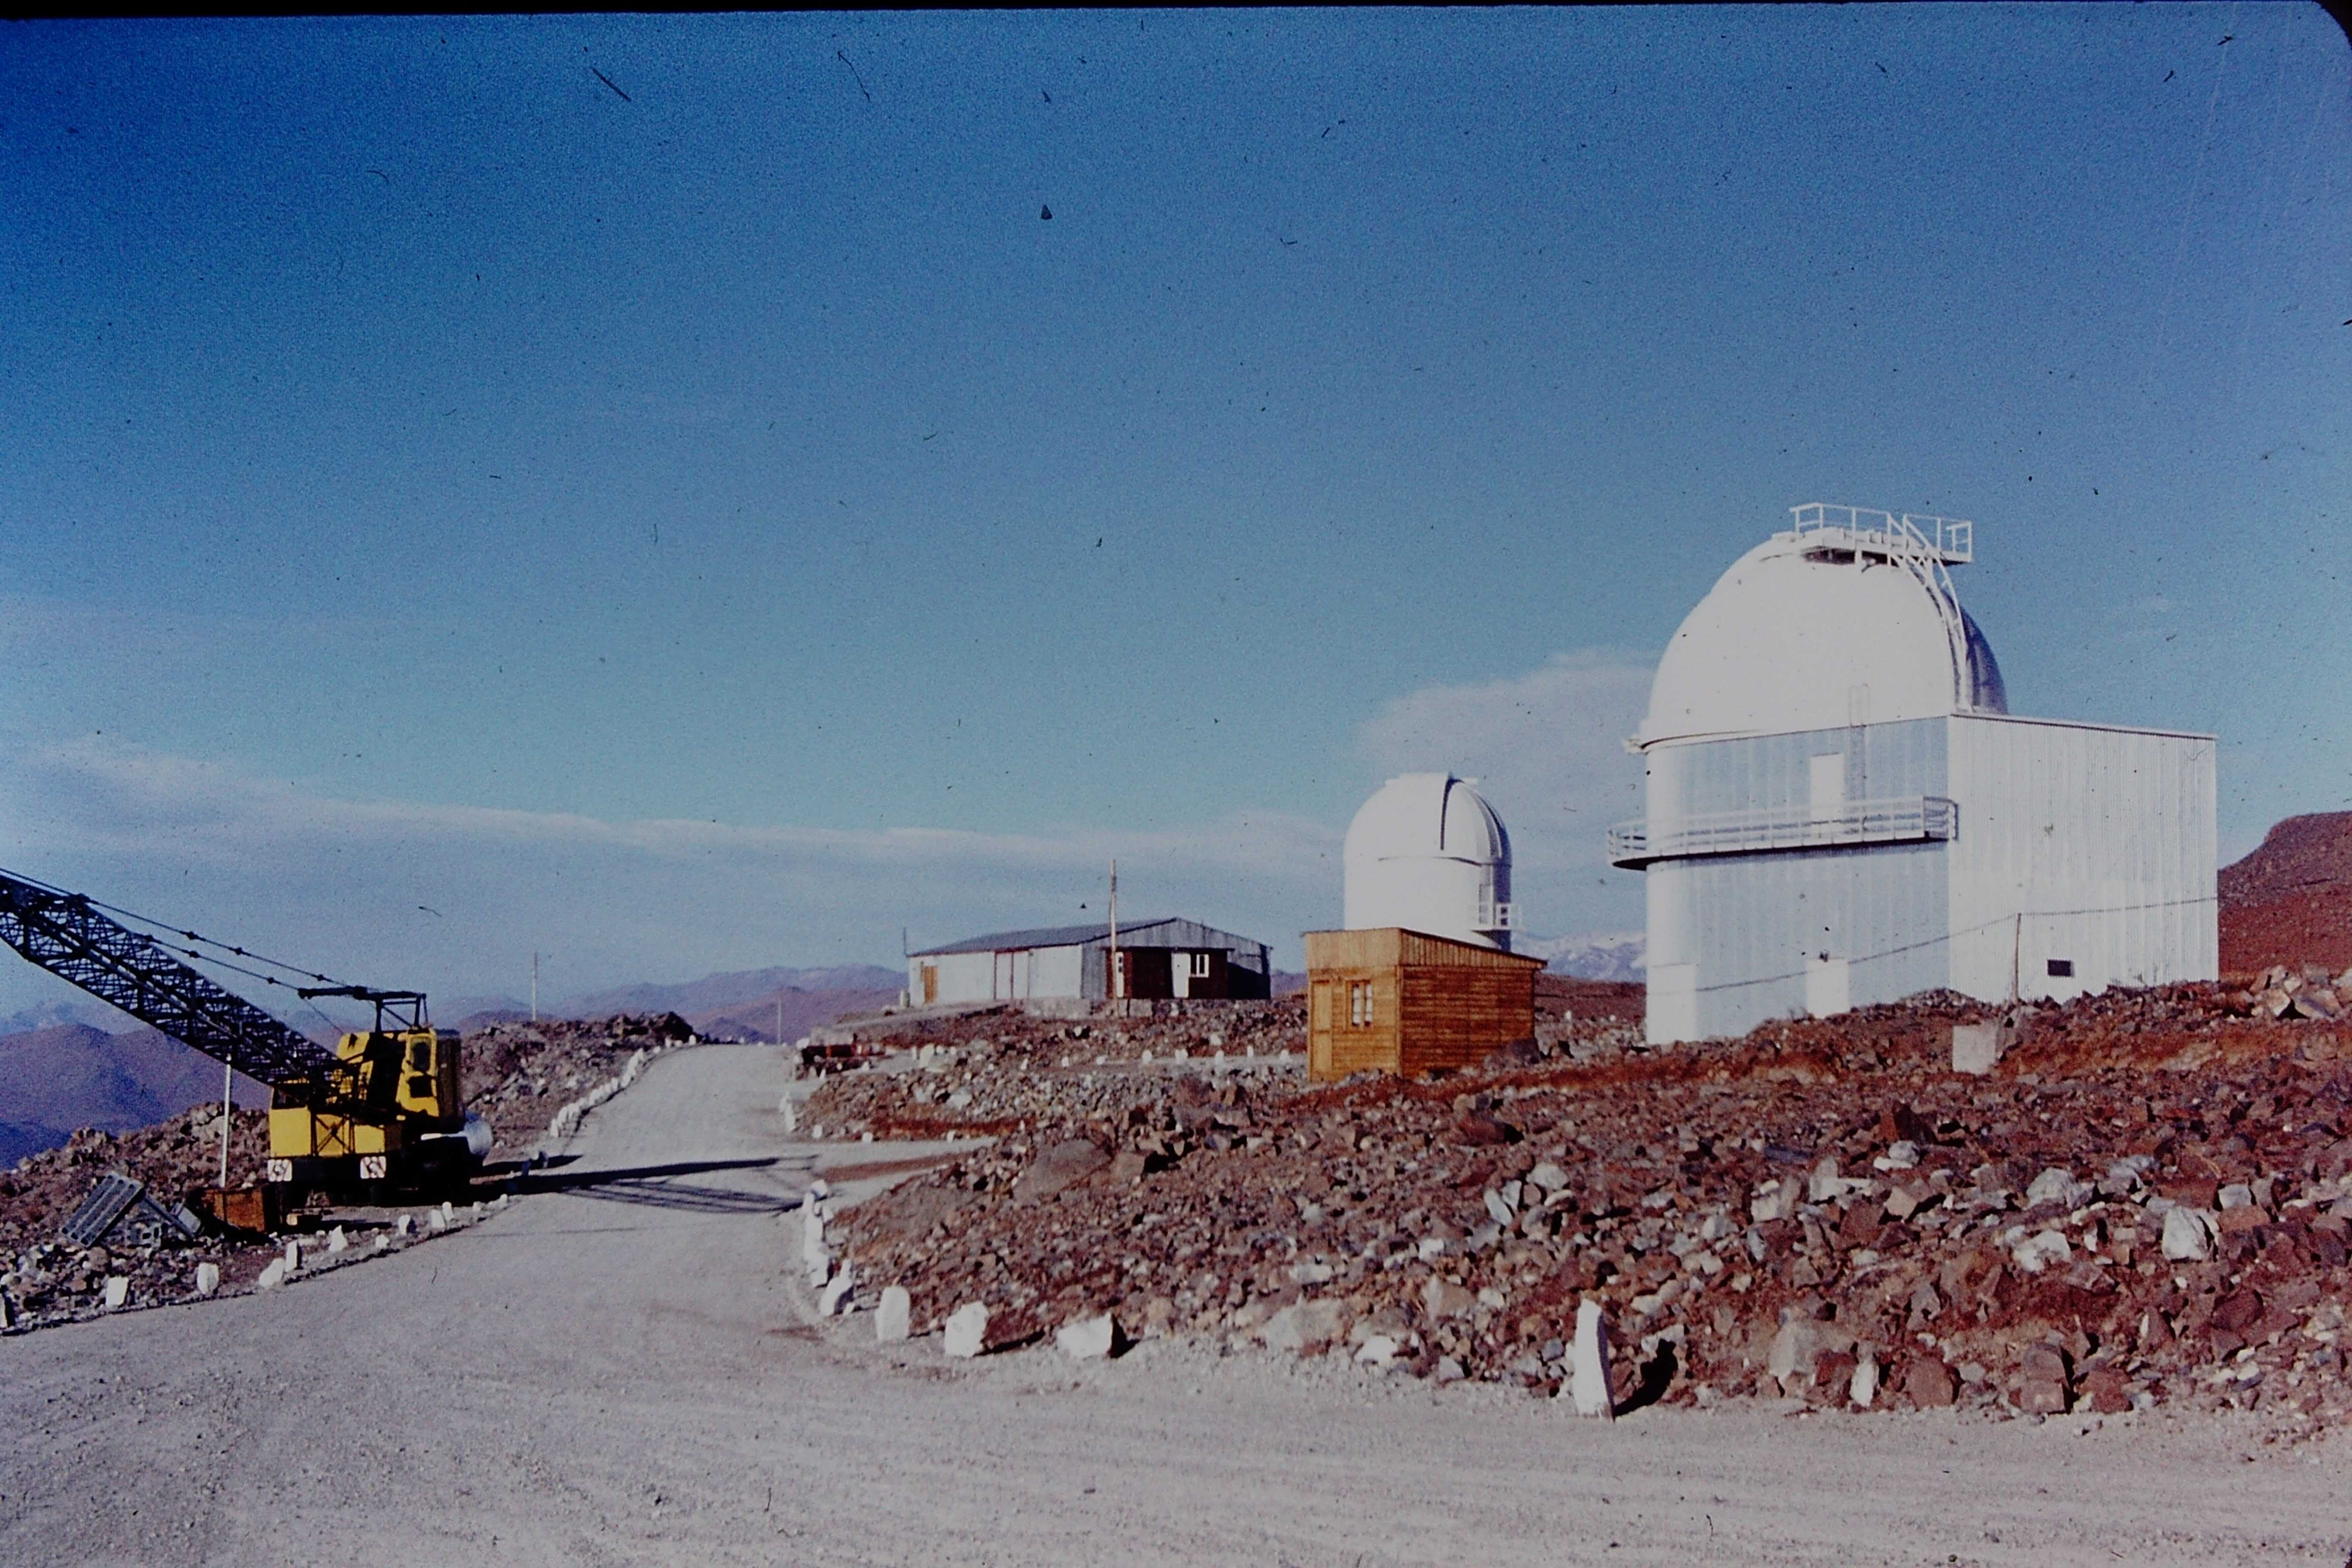 Enterreno - Fotos históricas de chile - fotos antiguas de Chile - Observatorio Cerro La Silla, 70s